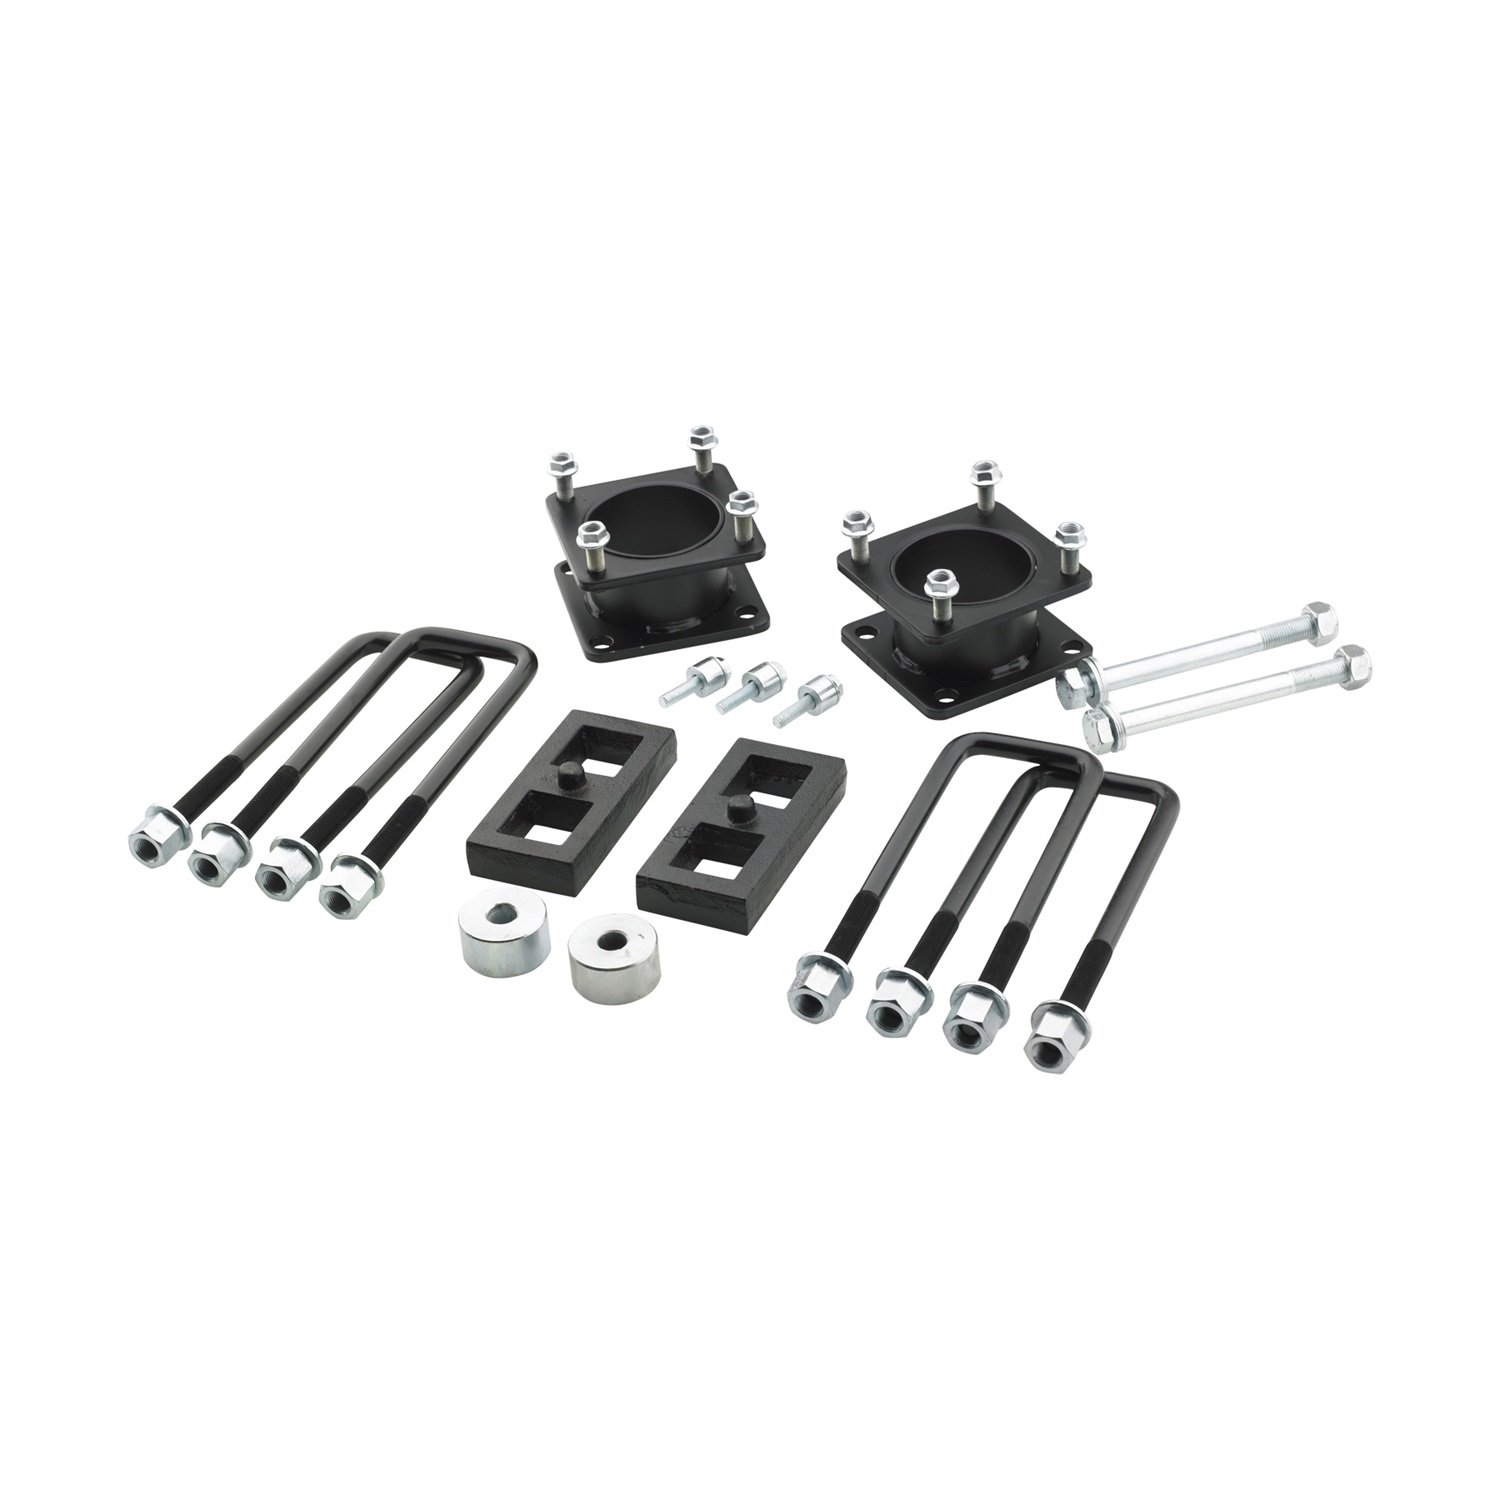 hight resolution of get quotations pro comp 65225k 3 0 front 1 0 rear suspension lift kit for tundra non